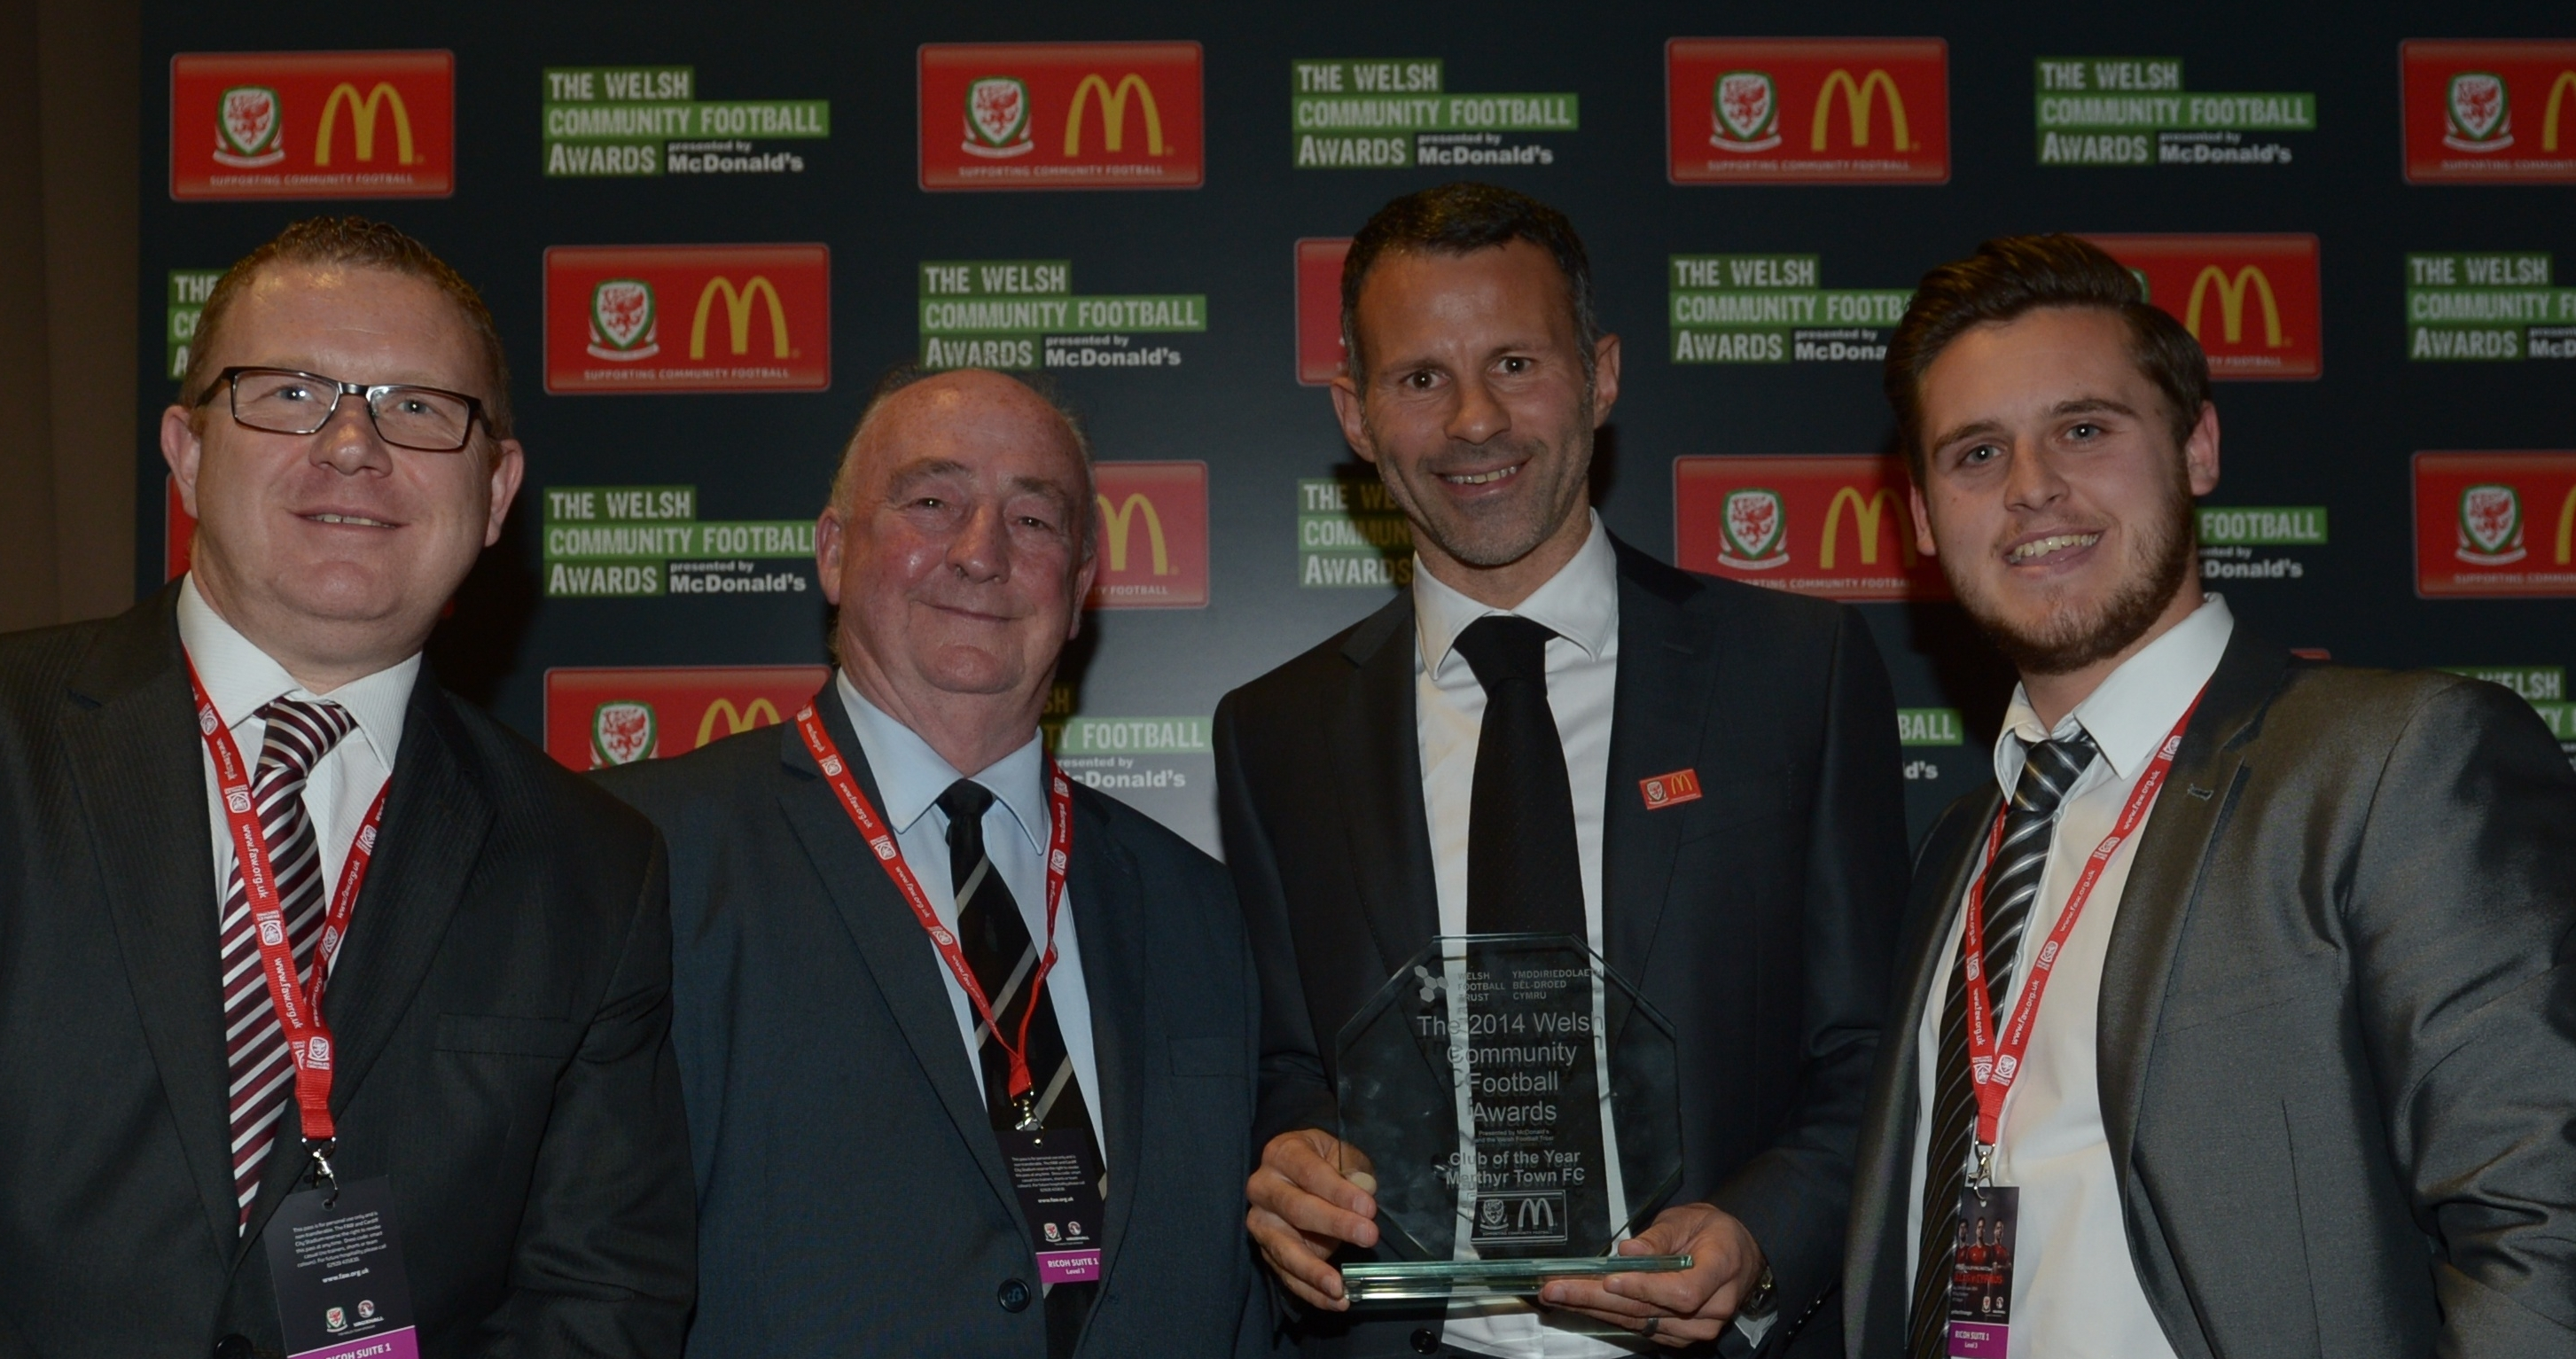 Manchester United Legend opens nominations for the 2015 Welsh Community Football Awards